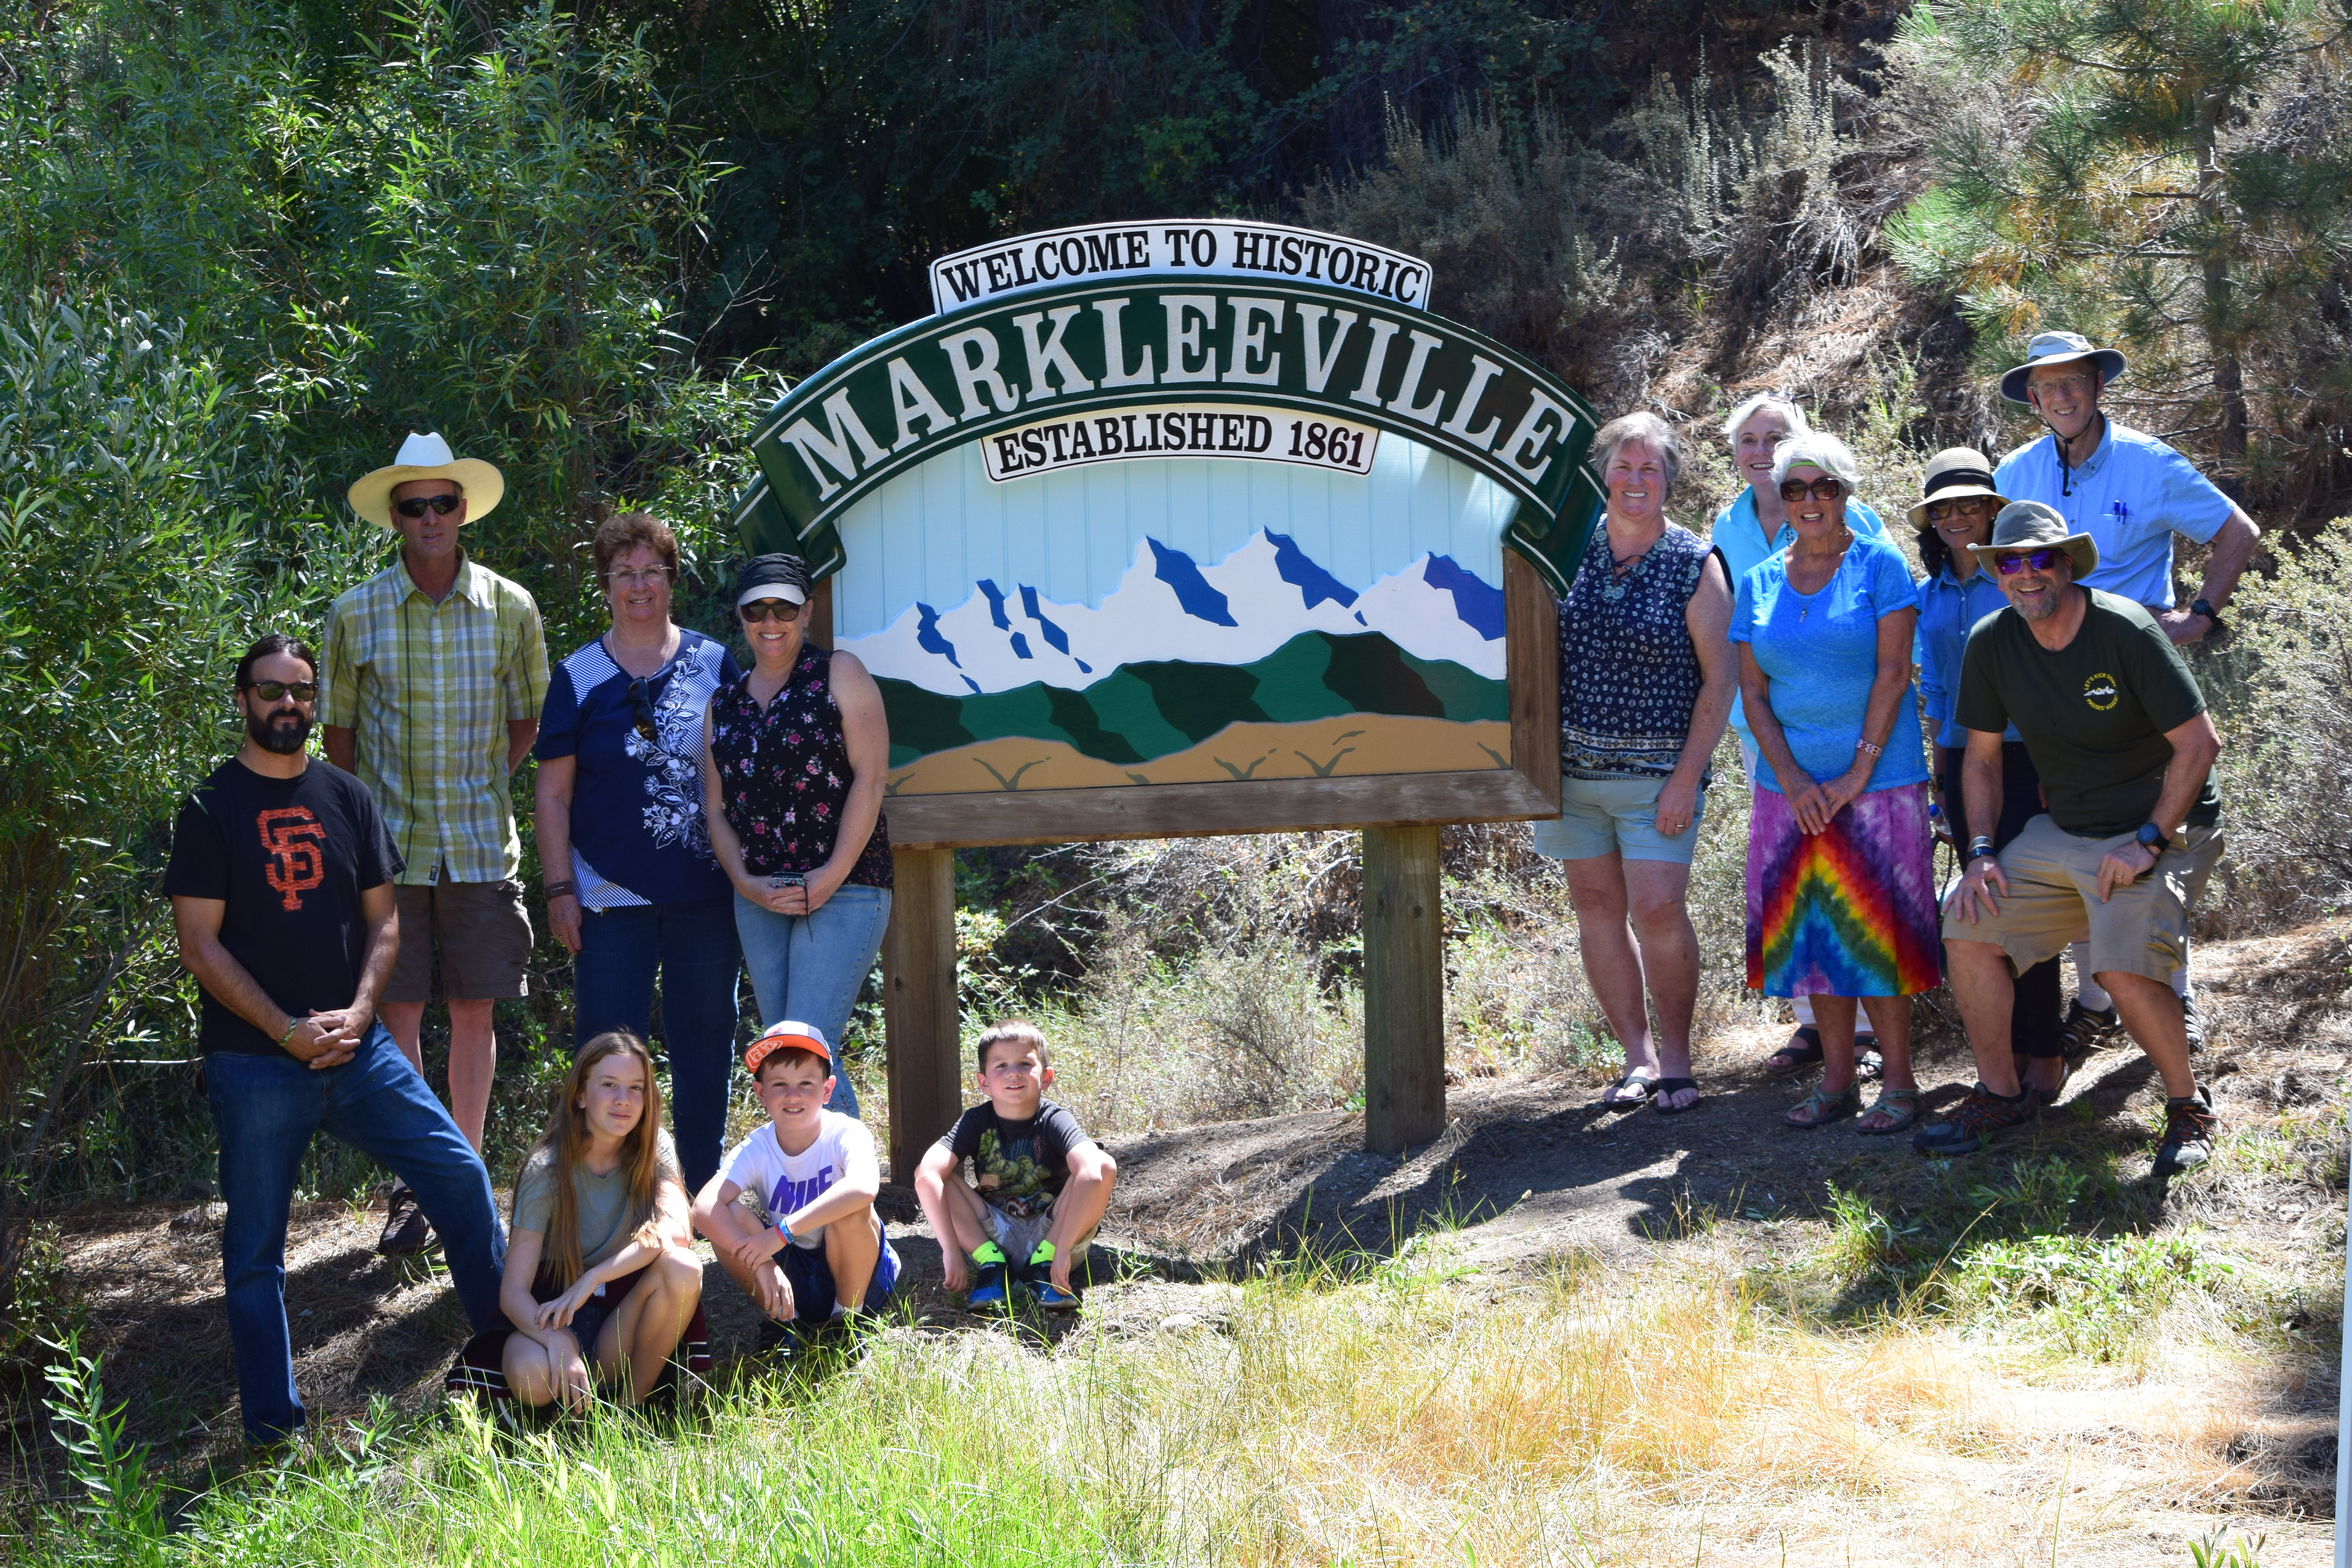 Welcome to Historic Markleeville Signs - dedication